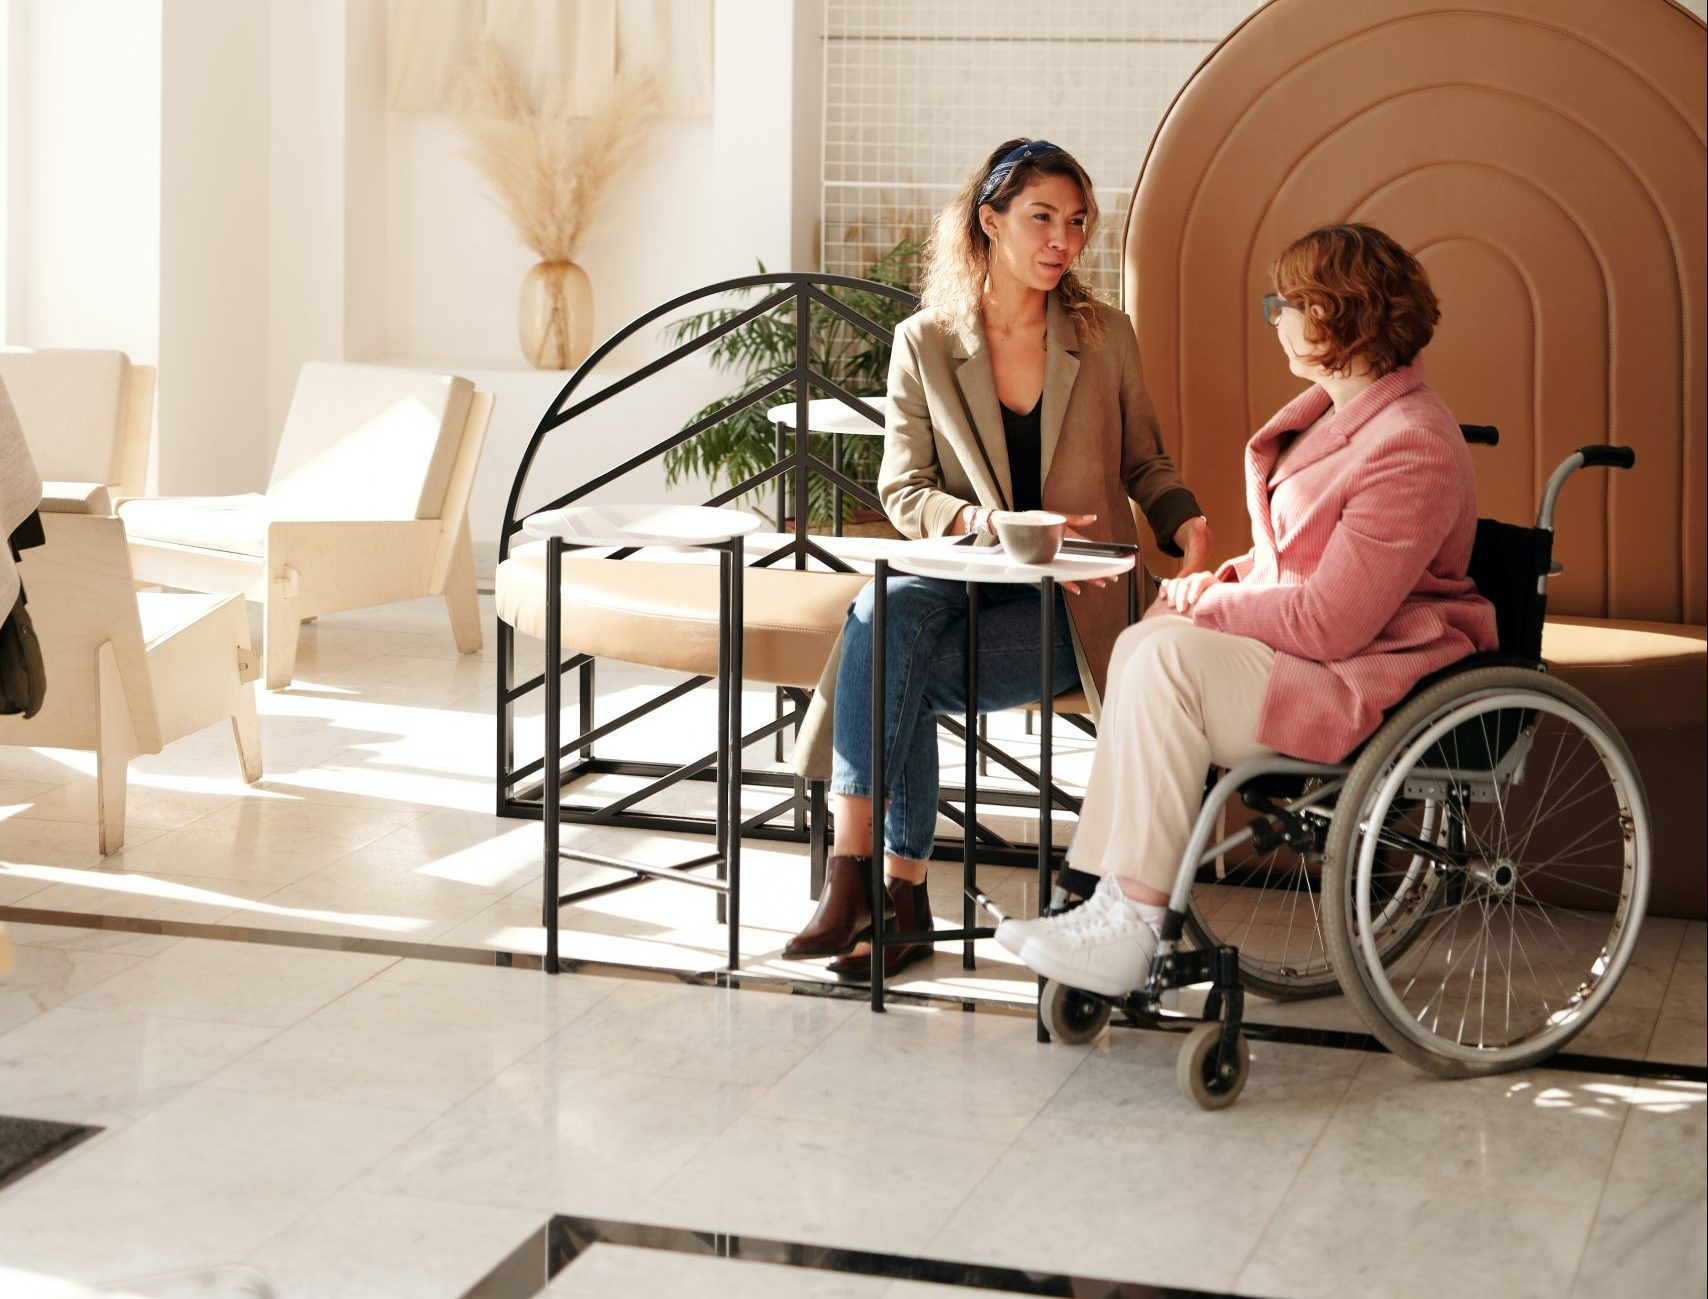 Photo of therapist and elderly patient in wheelchair to illustrate AACs stroke and Early Supported Discharge Services available in Reno, Nevada